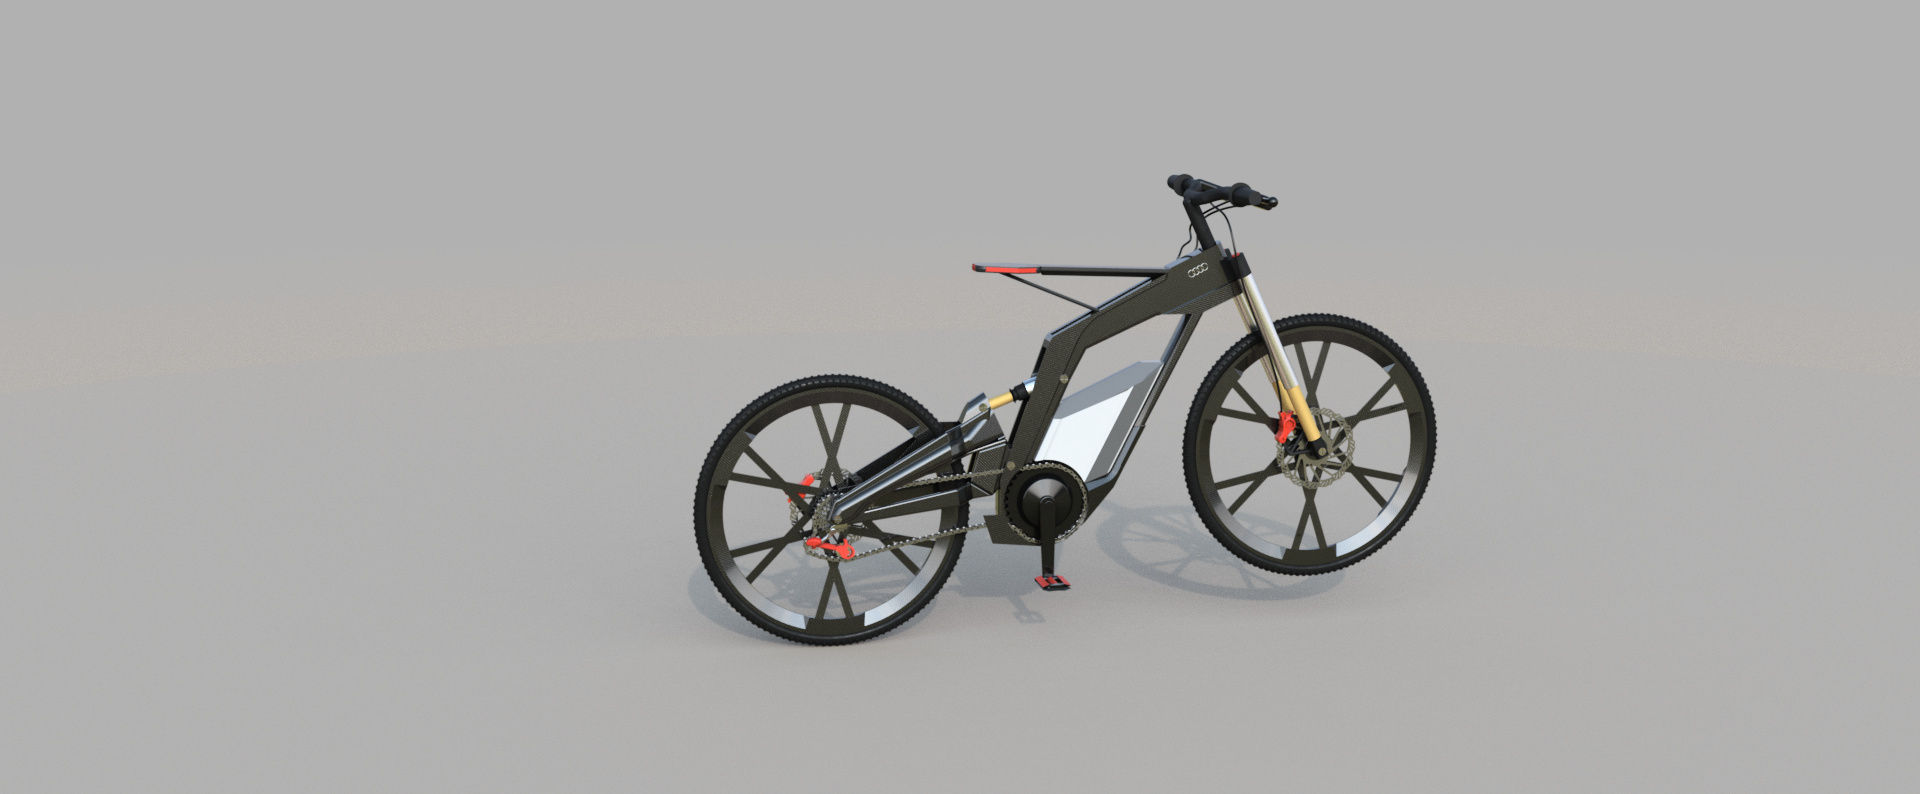 news shows cool very audi gallery photo bike concept autoevolution motorcycle